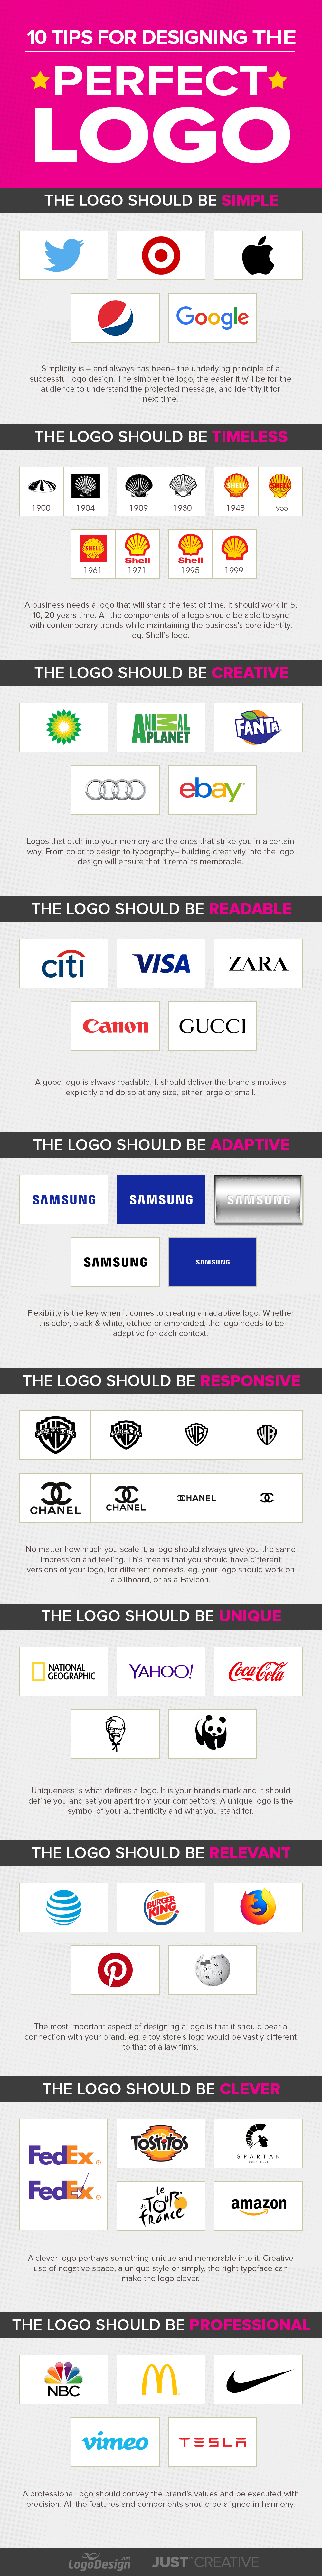 10 Tips for Designing the Perfect Logo infographic/